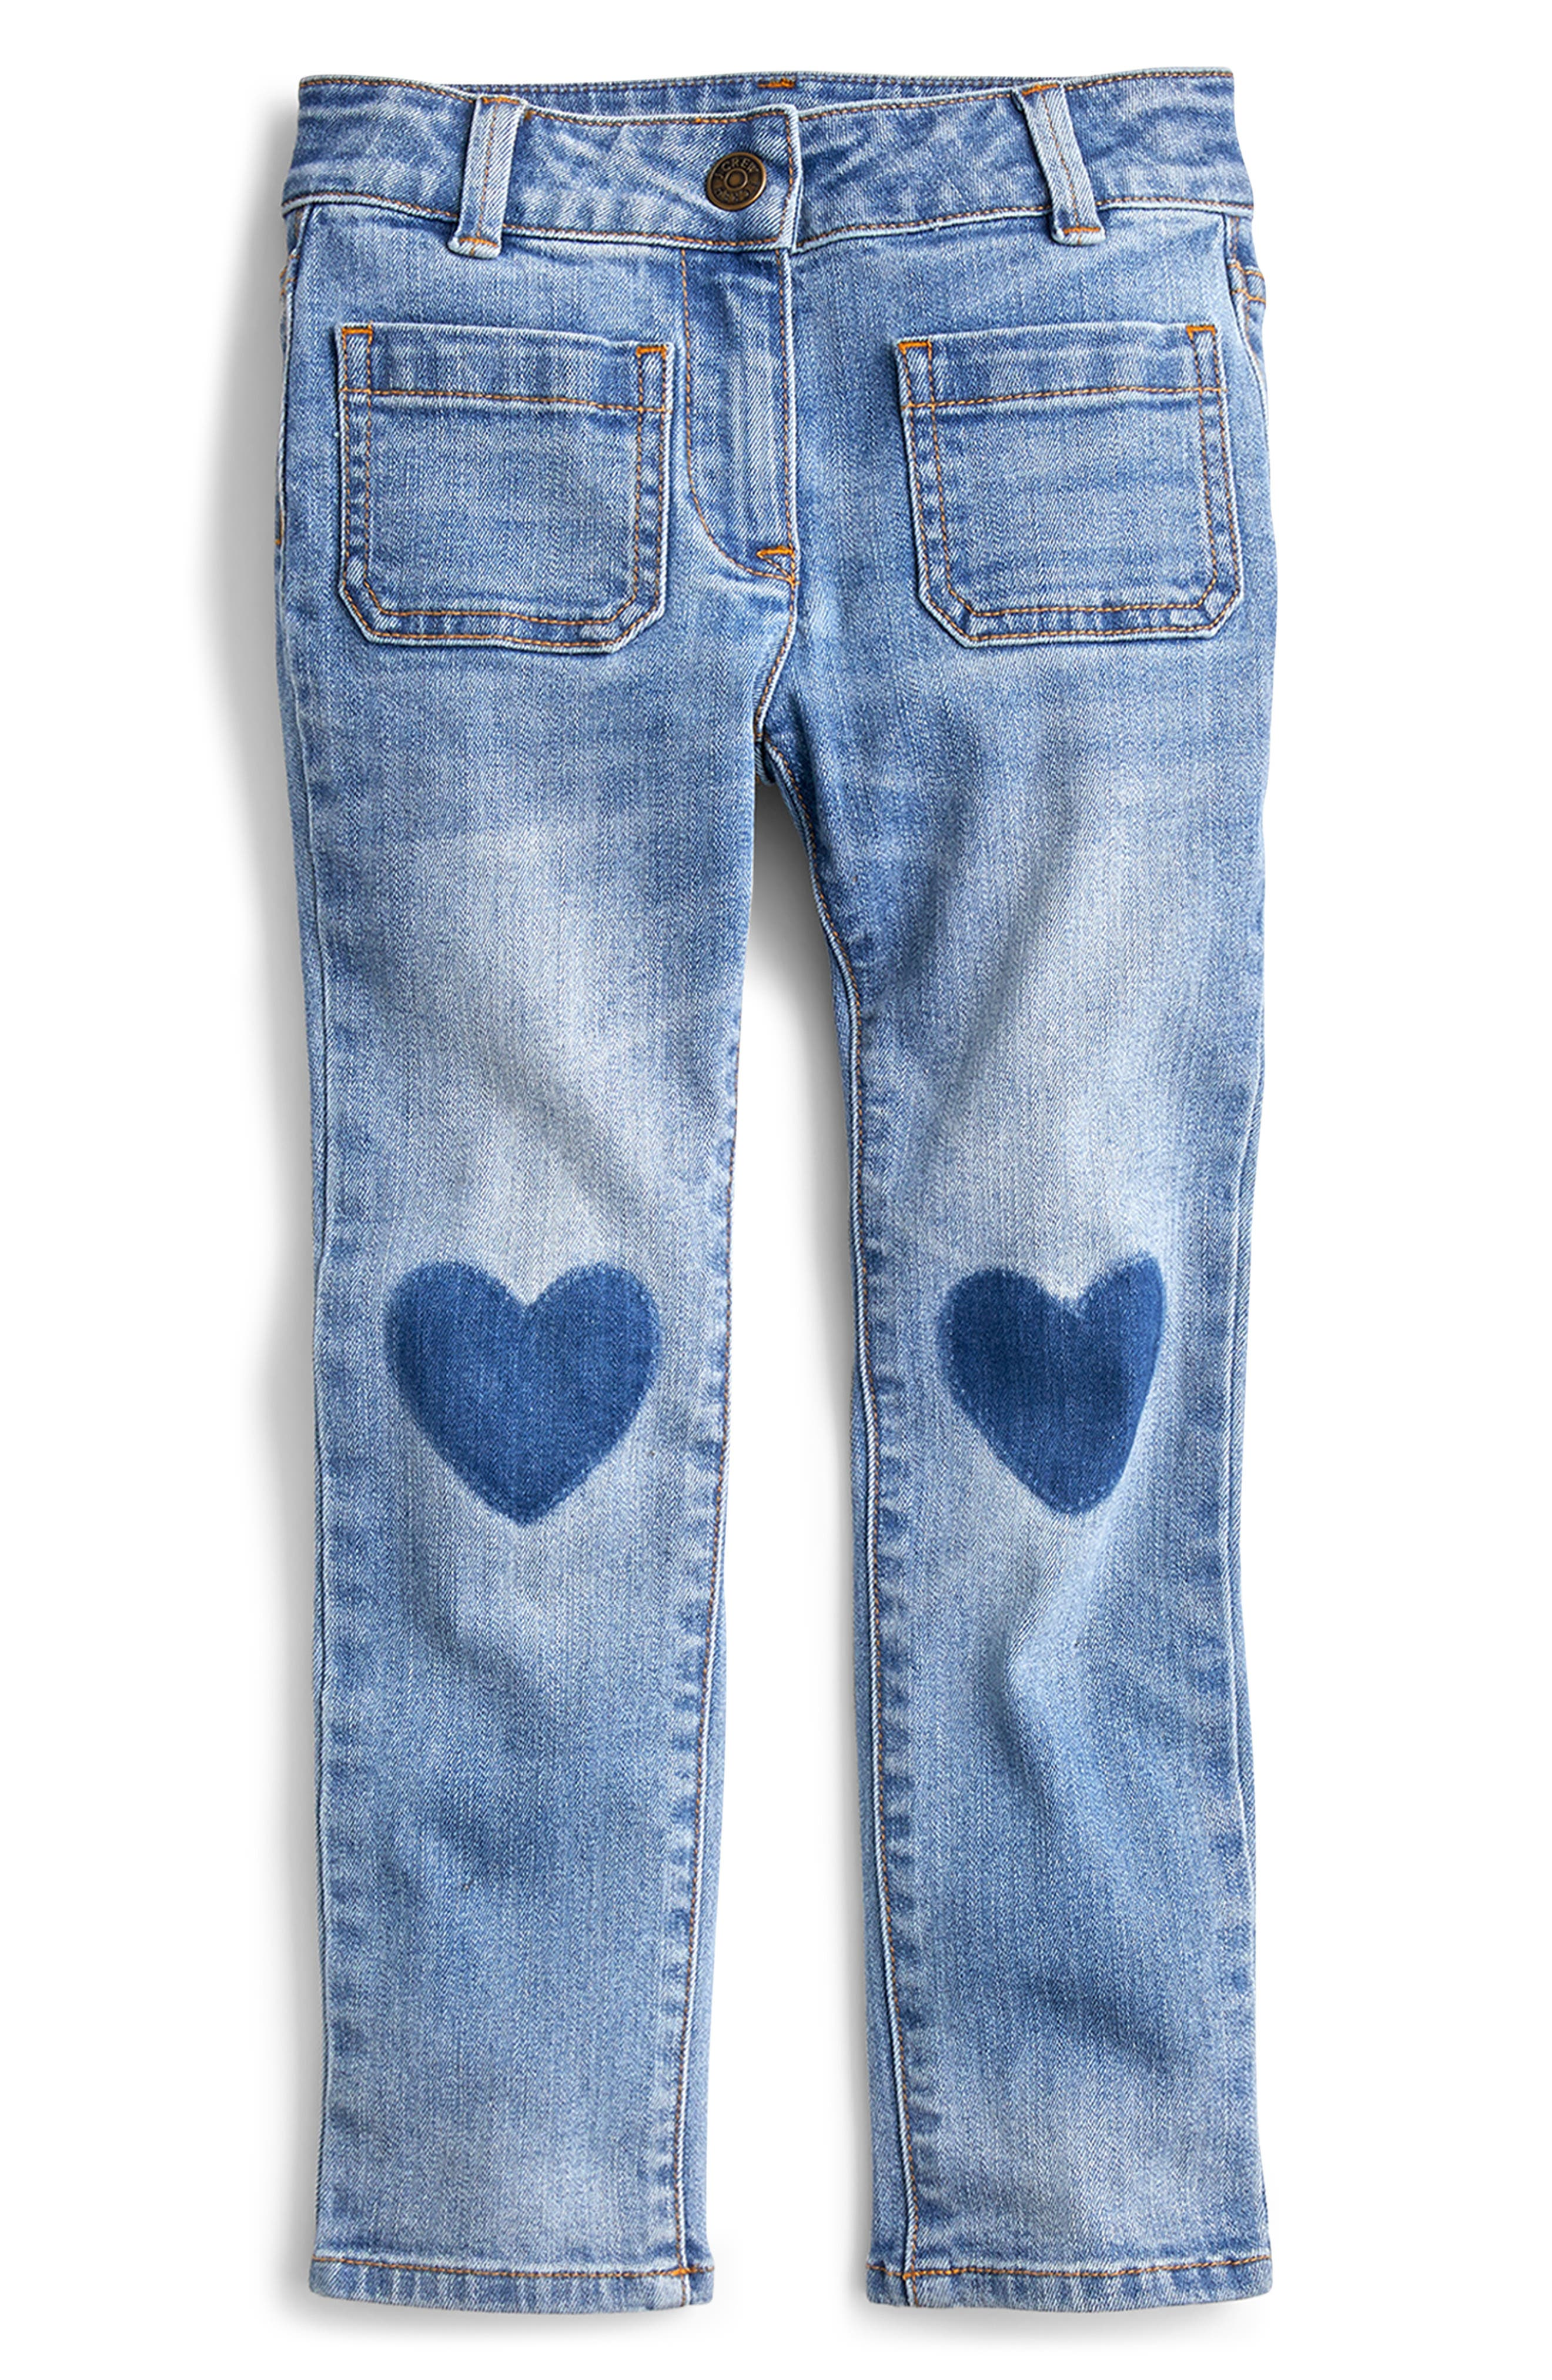 Toddler Girls Crewcuts By Jcrew Heart Patch Jeans Size 2T  Blue